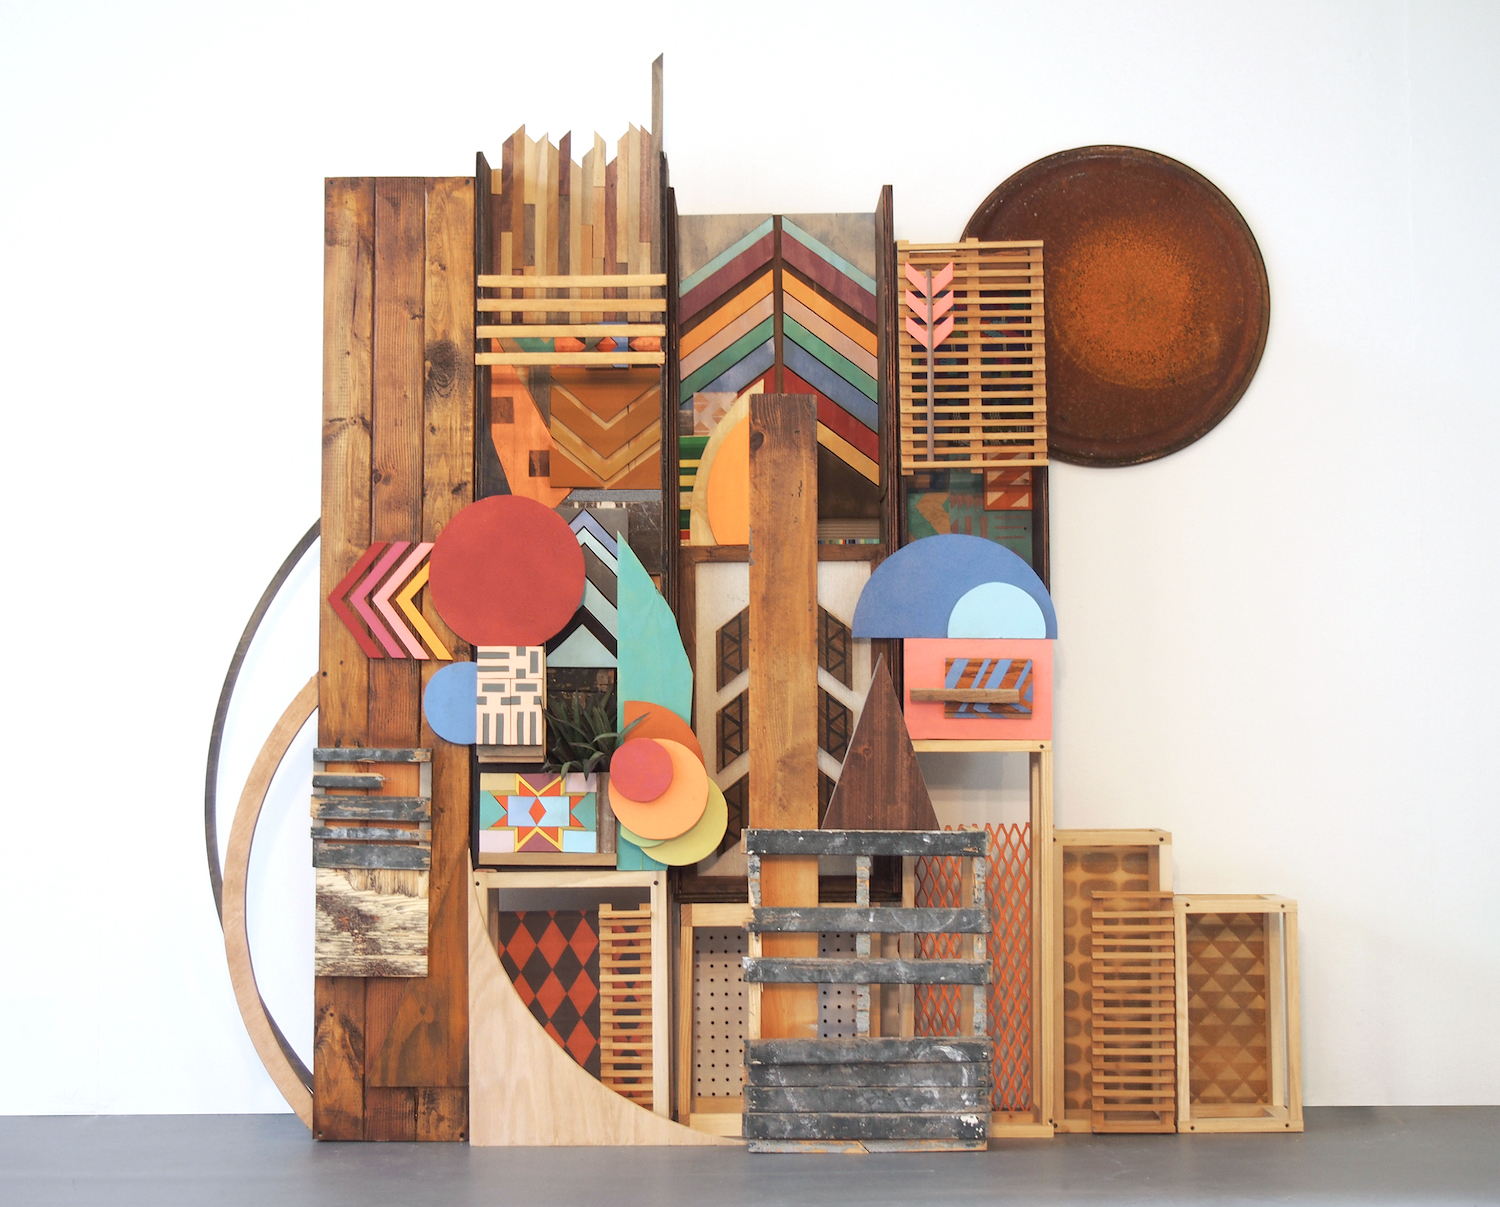 75x70x32 , wood, metal, paper, plastic, found items, woven items, printed fabric, metal drum lid, artificial plant, stain, acrylic paint, 75 x 70 x 32 inches